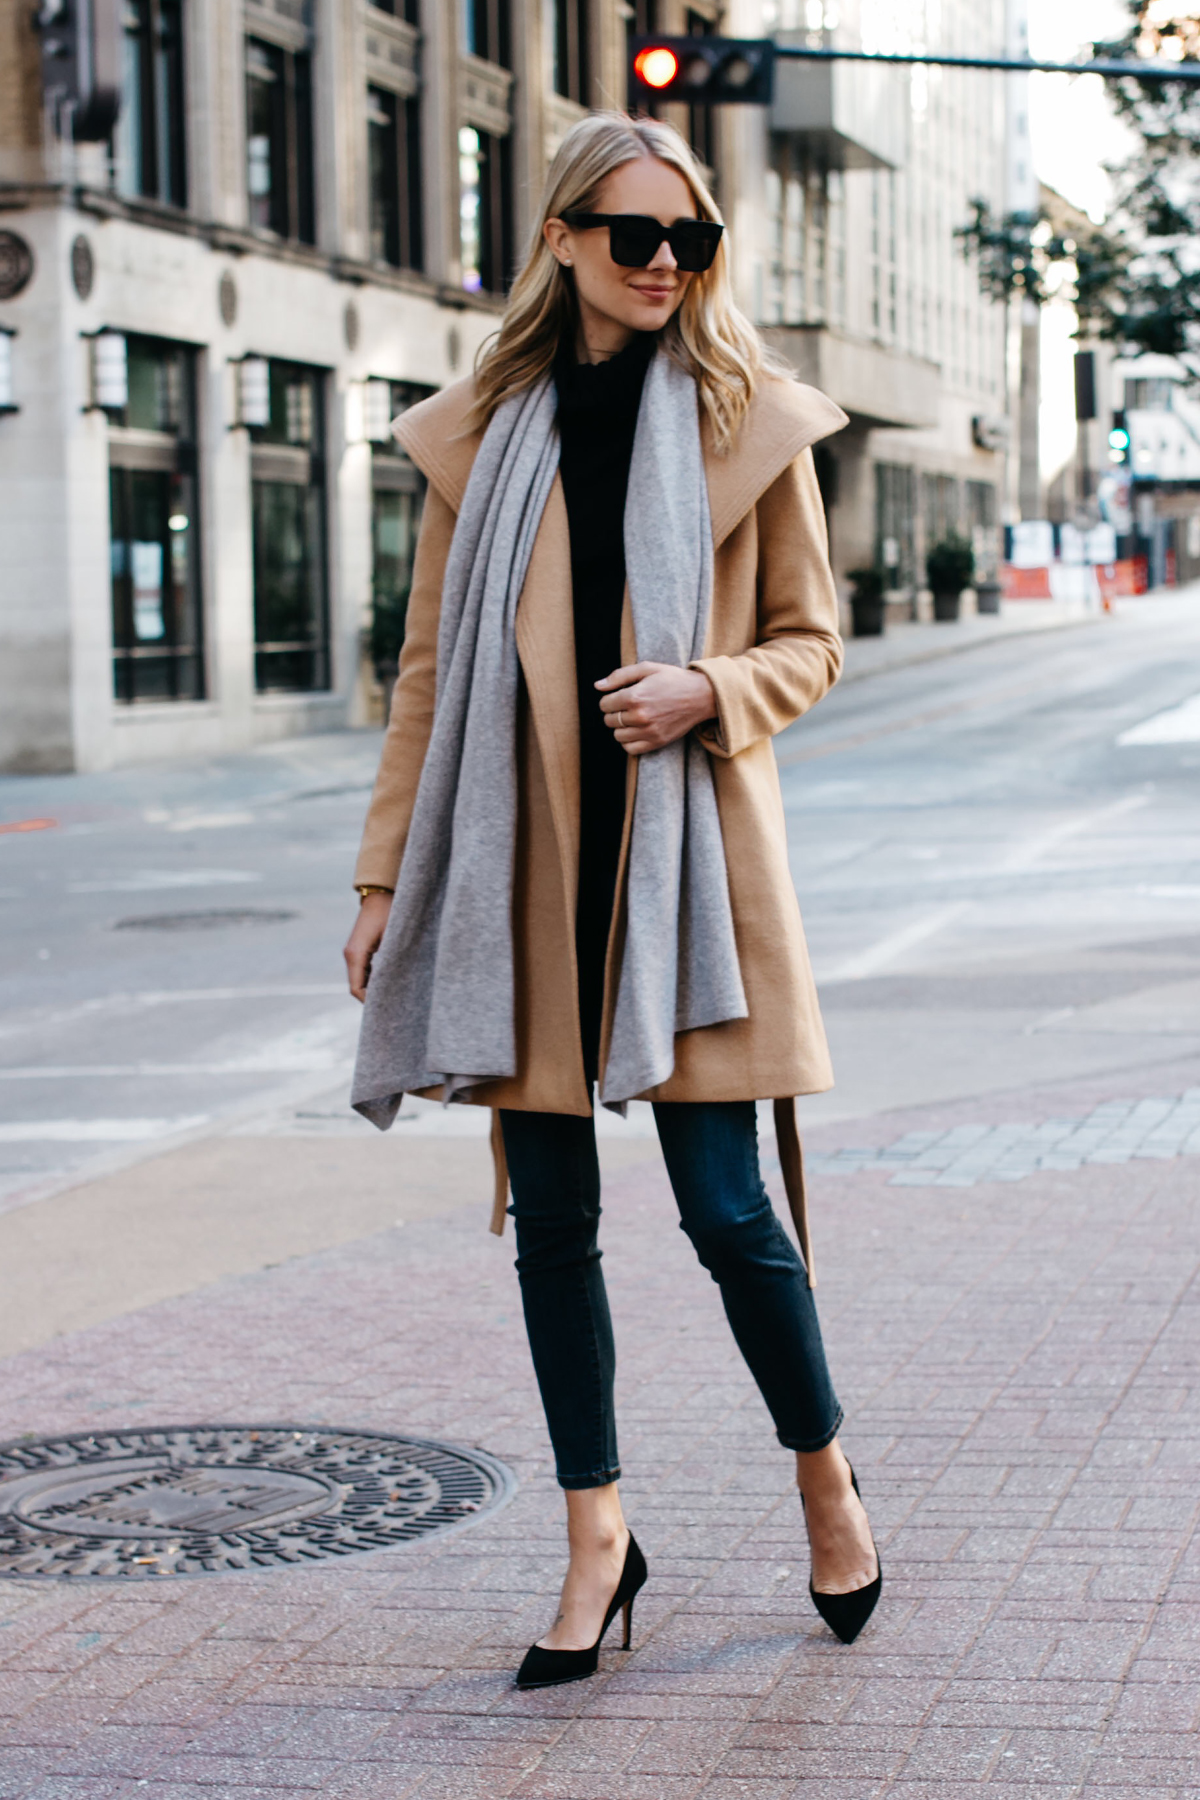 Blonde Woman Wearing ann taylor camel wrap coat grey scarf black turtleneck sweater denim skinny jeans black pumps Fashion Jackson Dallas Blogger Fashion Blogger Street Style